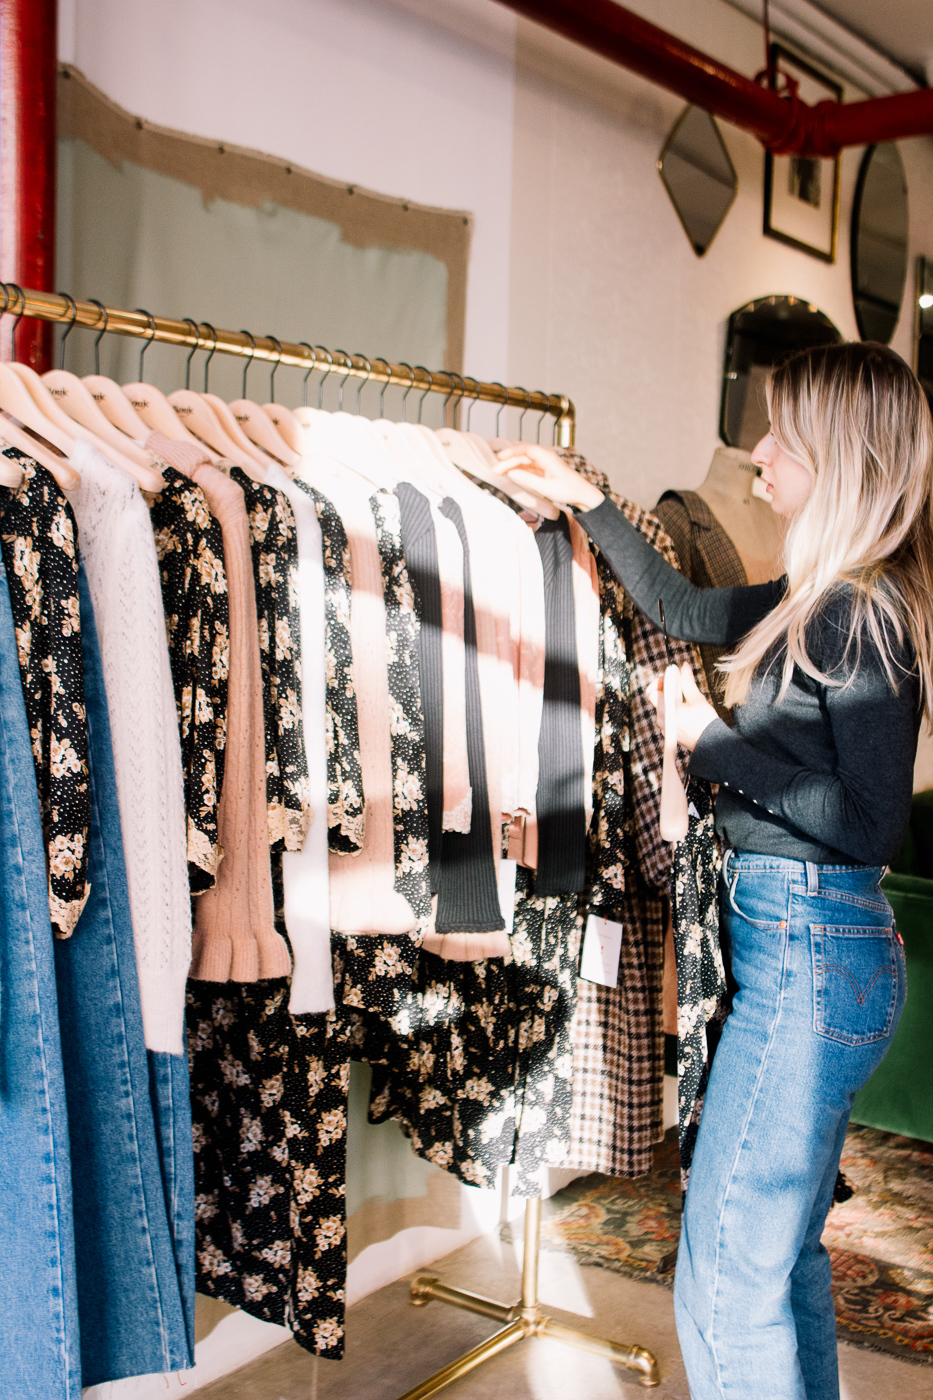 Rouje, pop up, how to build a pop up, Paris pop up, things to see in Paris, short-term retail,